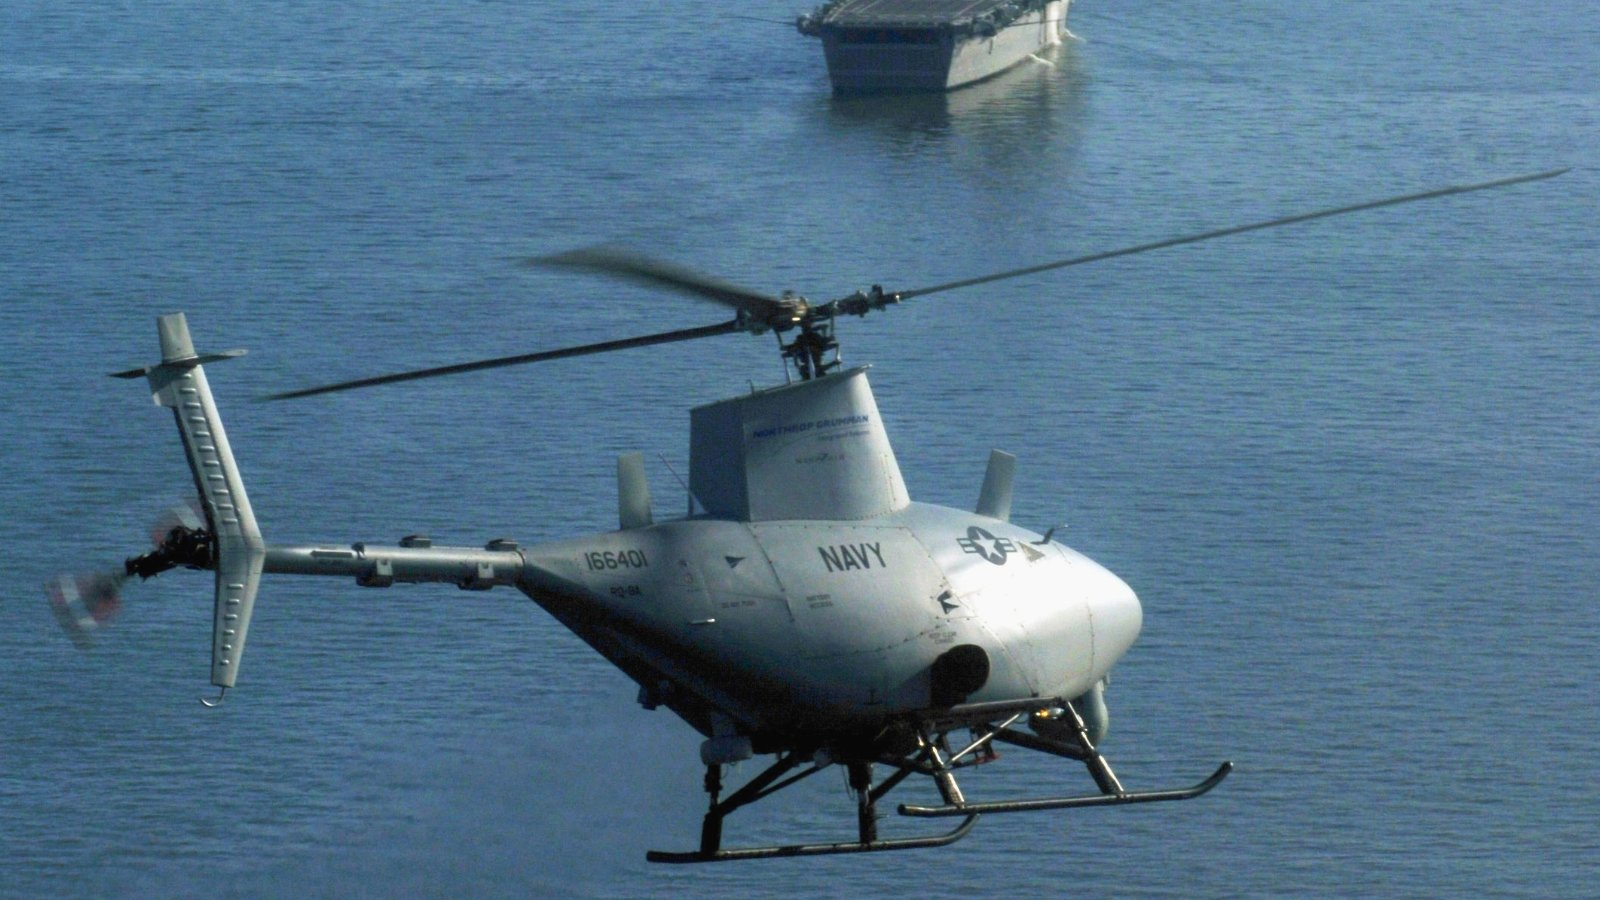 Click here to read The Navy's LIDAR-Equipped UAV Helo Hunts Pirates, Not Speeders